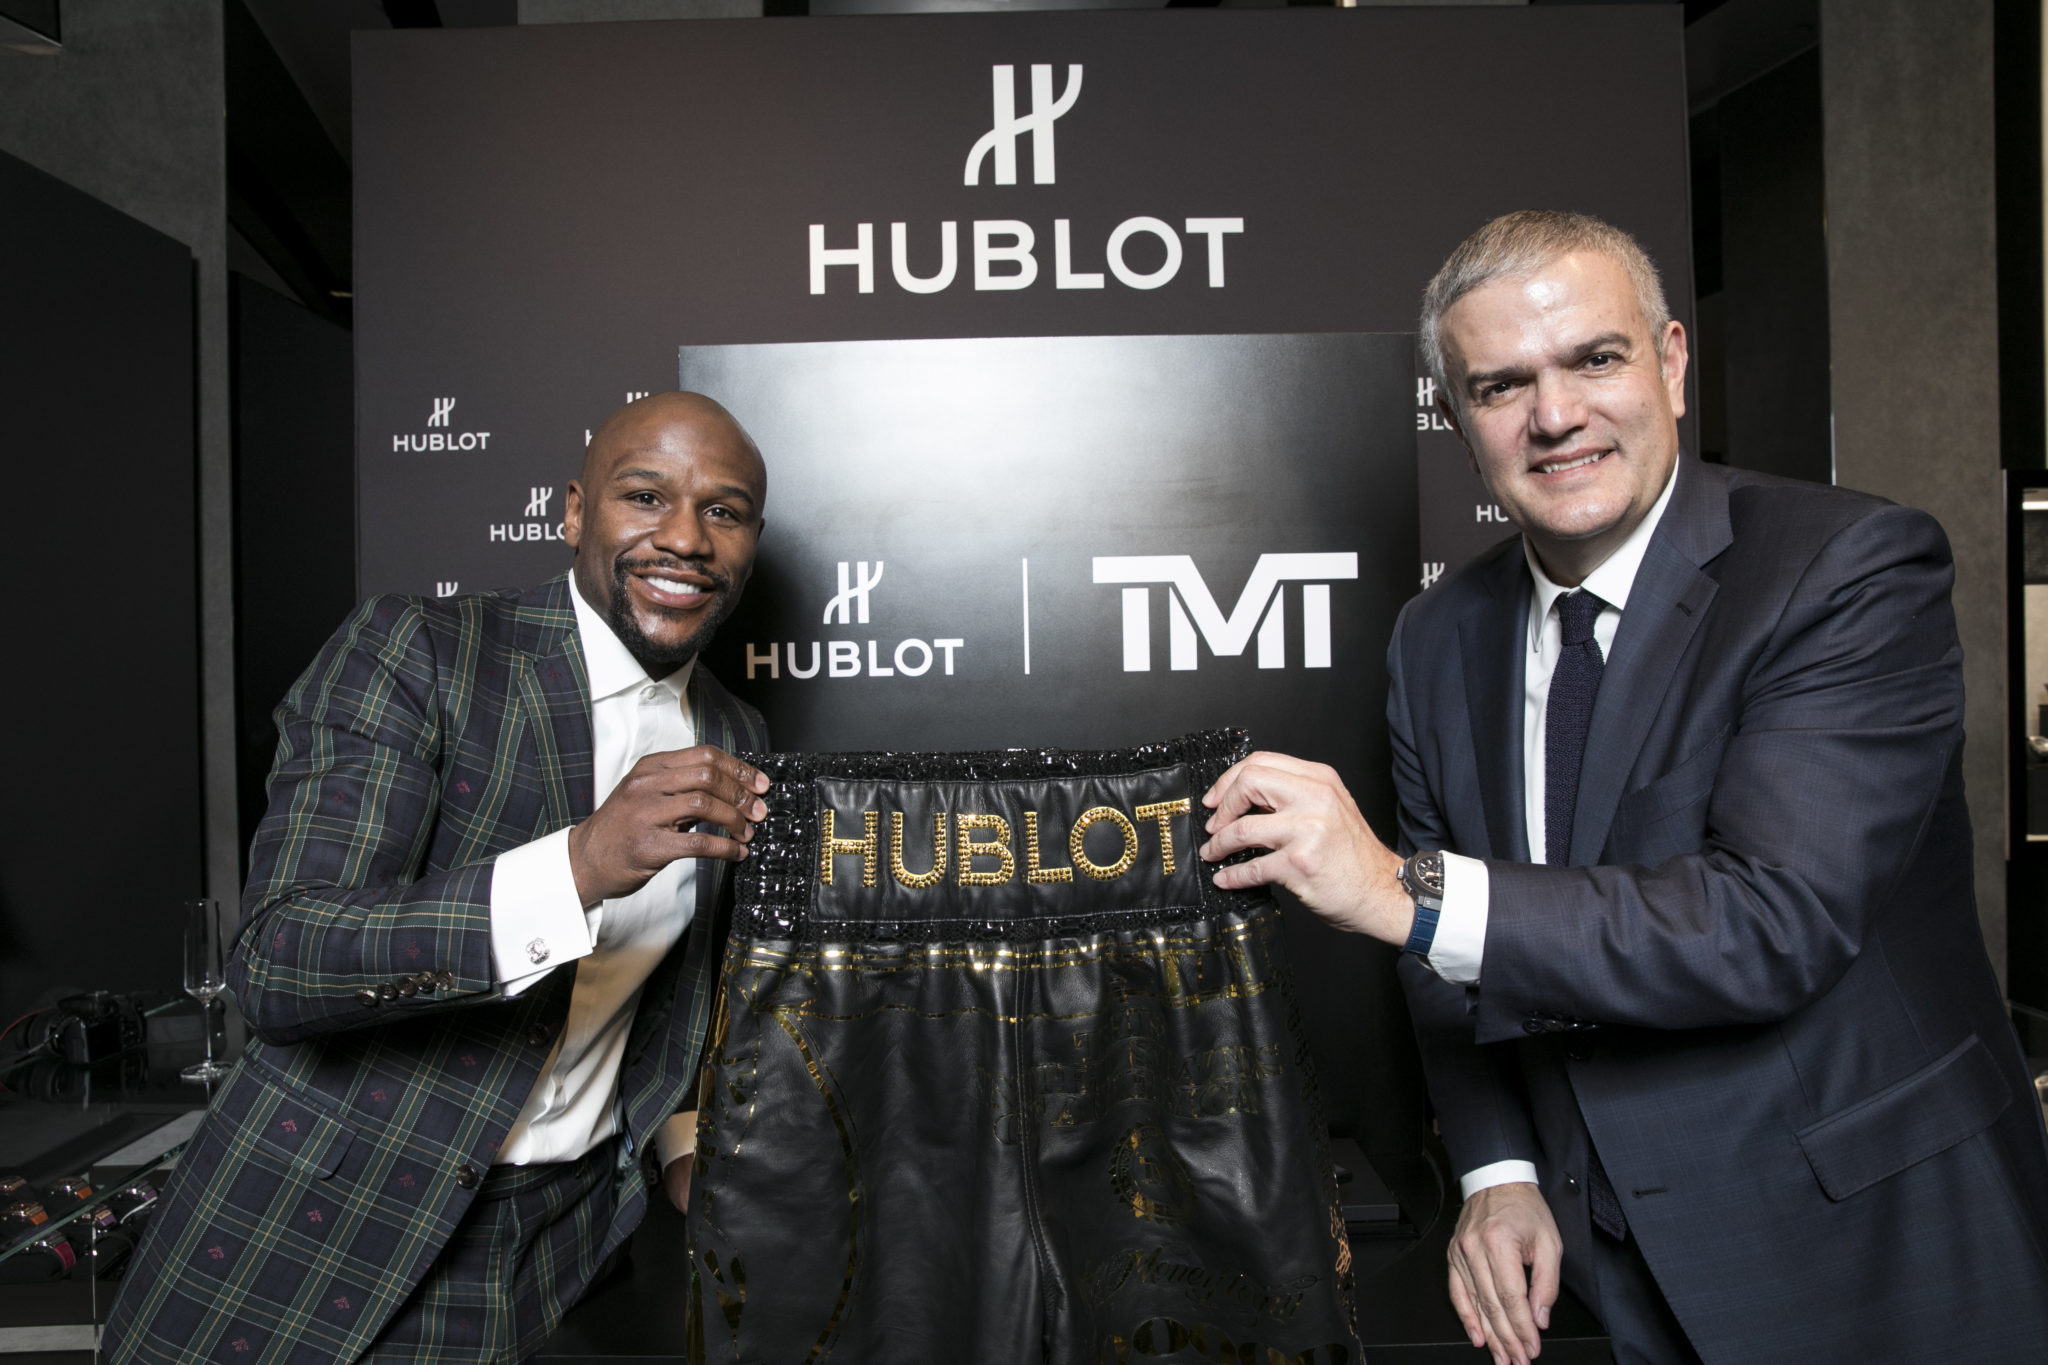 floyd-mayweather-and-ricardo-guadalupe-at-hublot-boutique-crystals-in-las-vegas-1